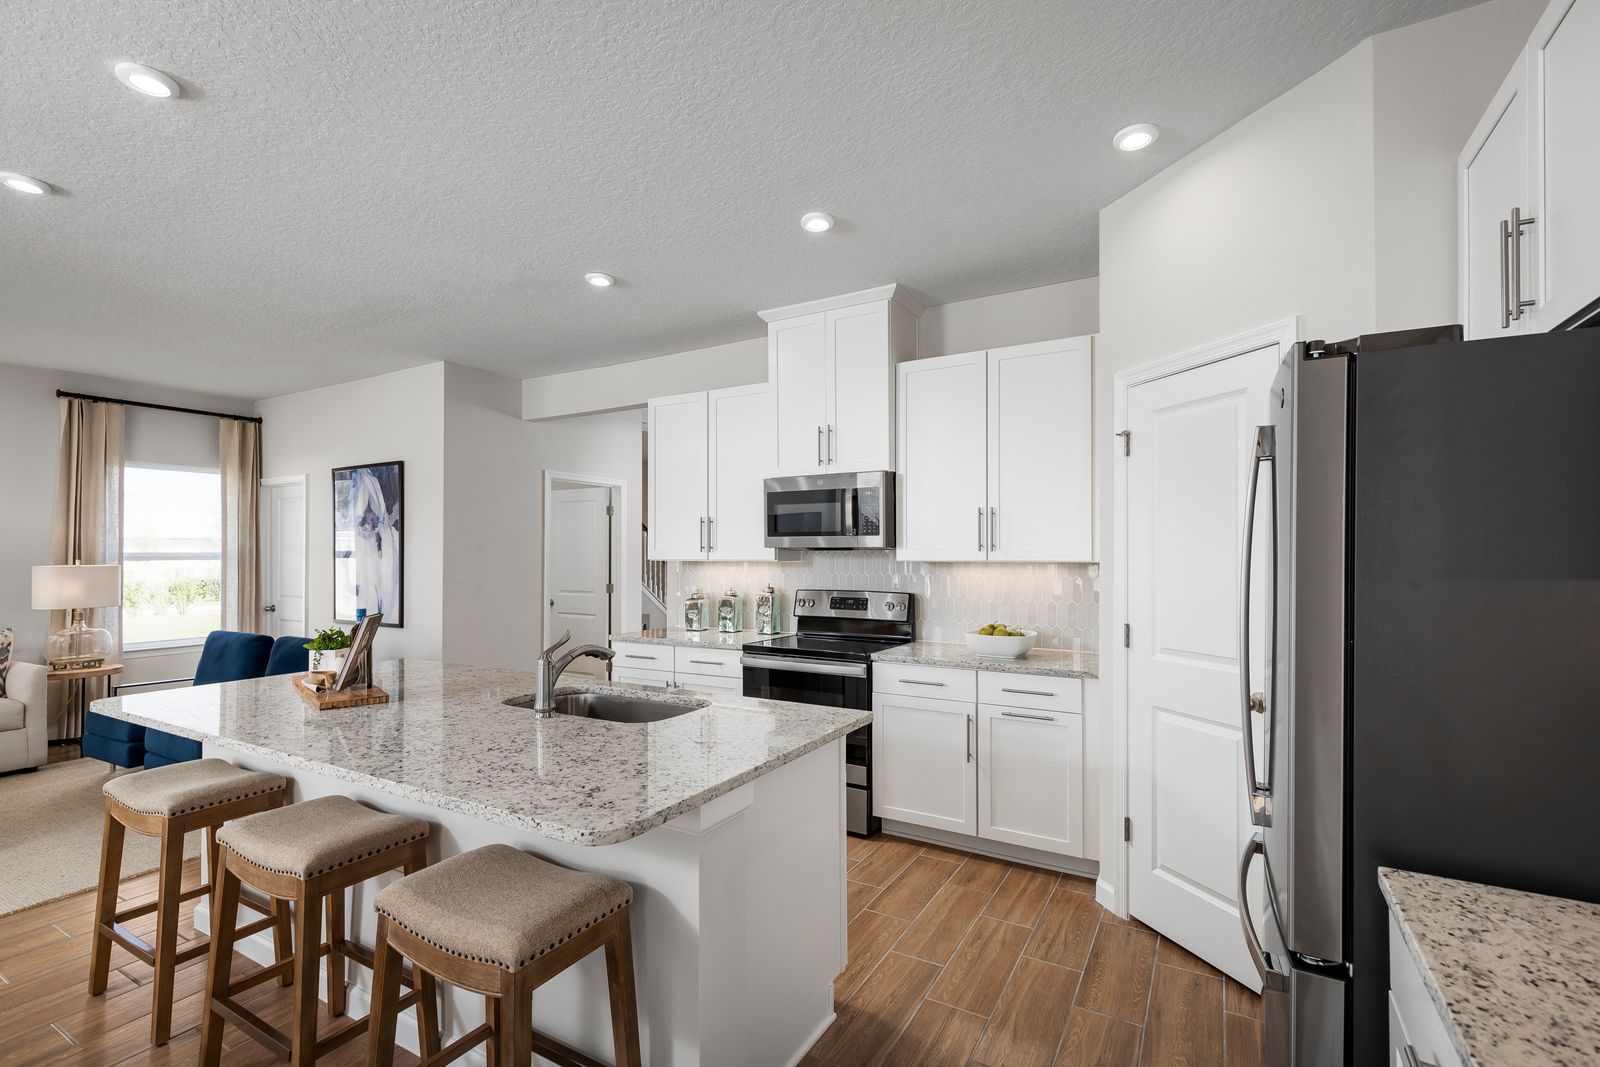 Kitchen featured in the Windermere By Ryan Homes in Sarasota-Bradenton, FL